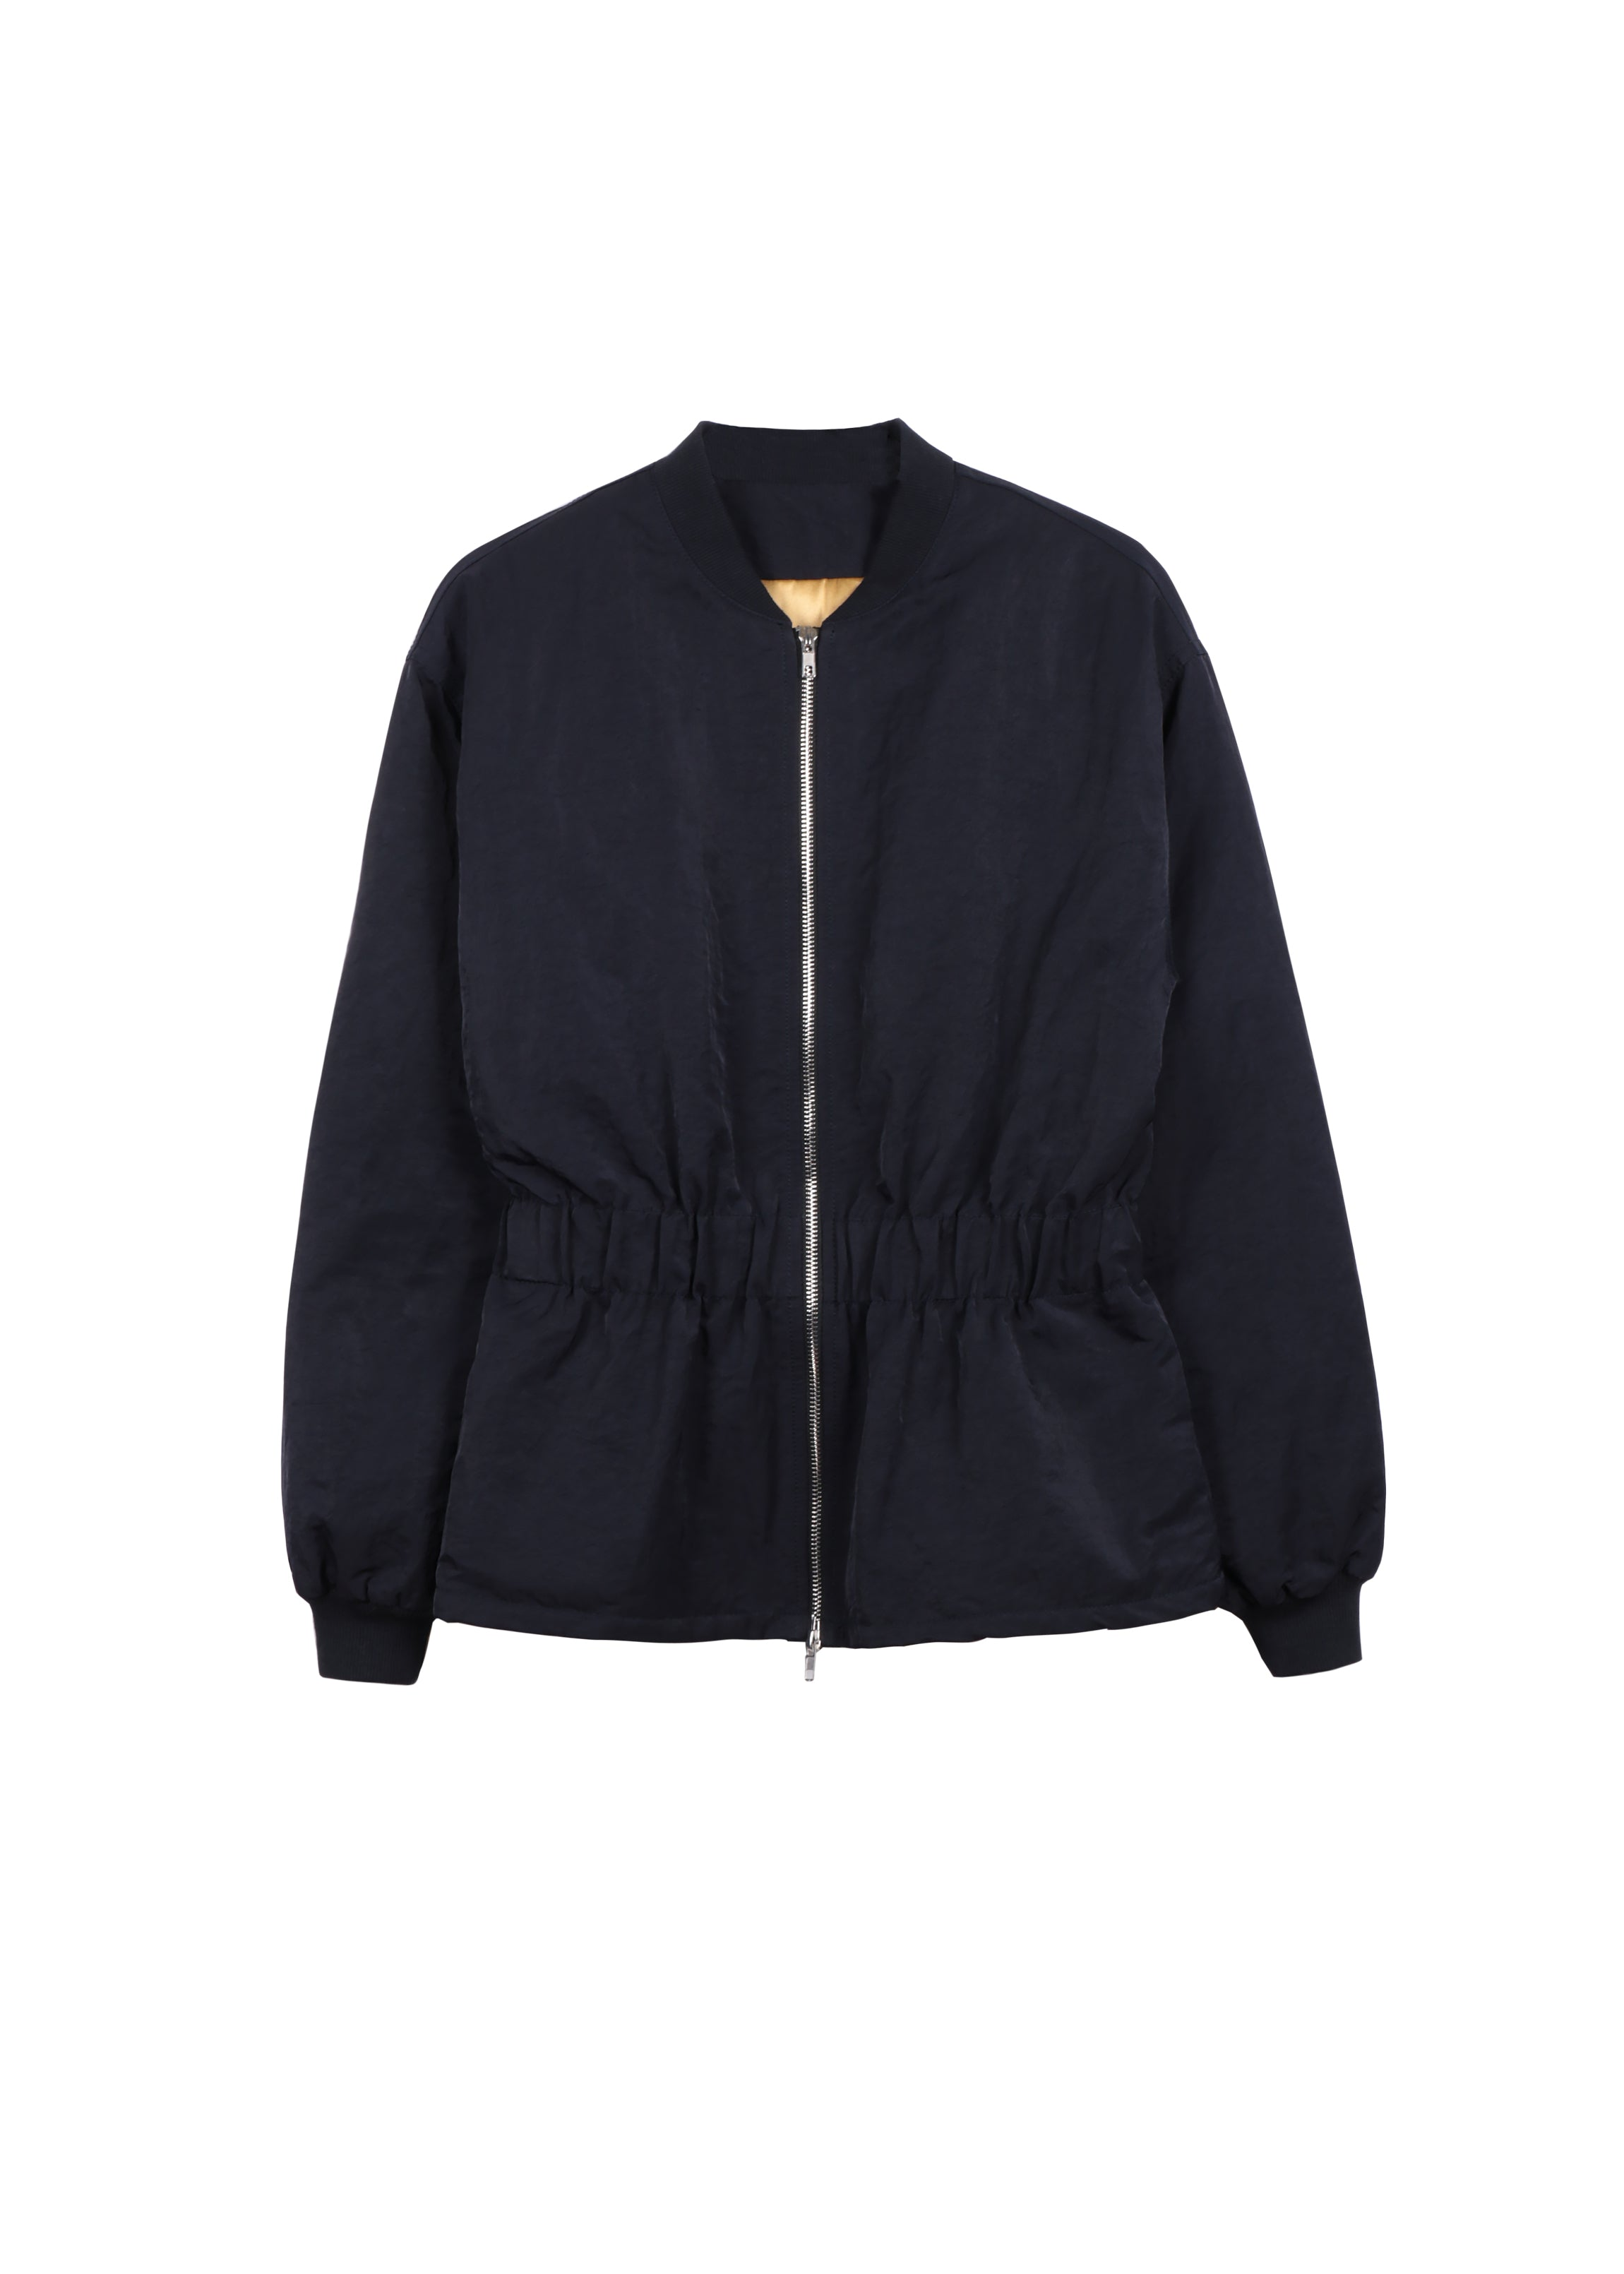 SYRIANA JACKET